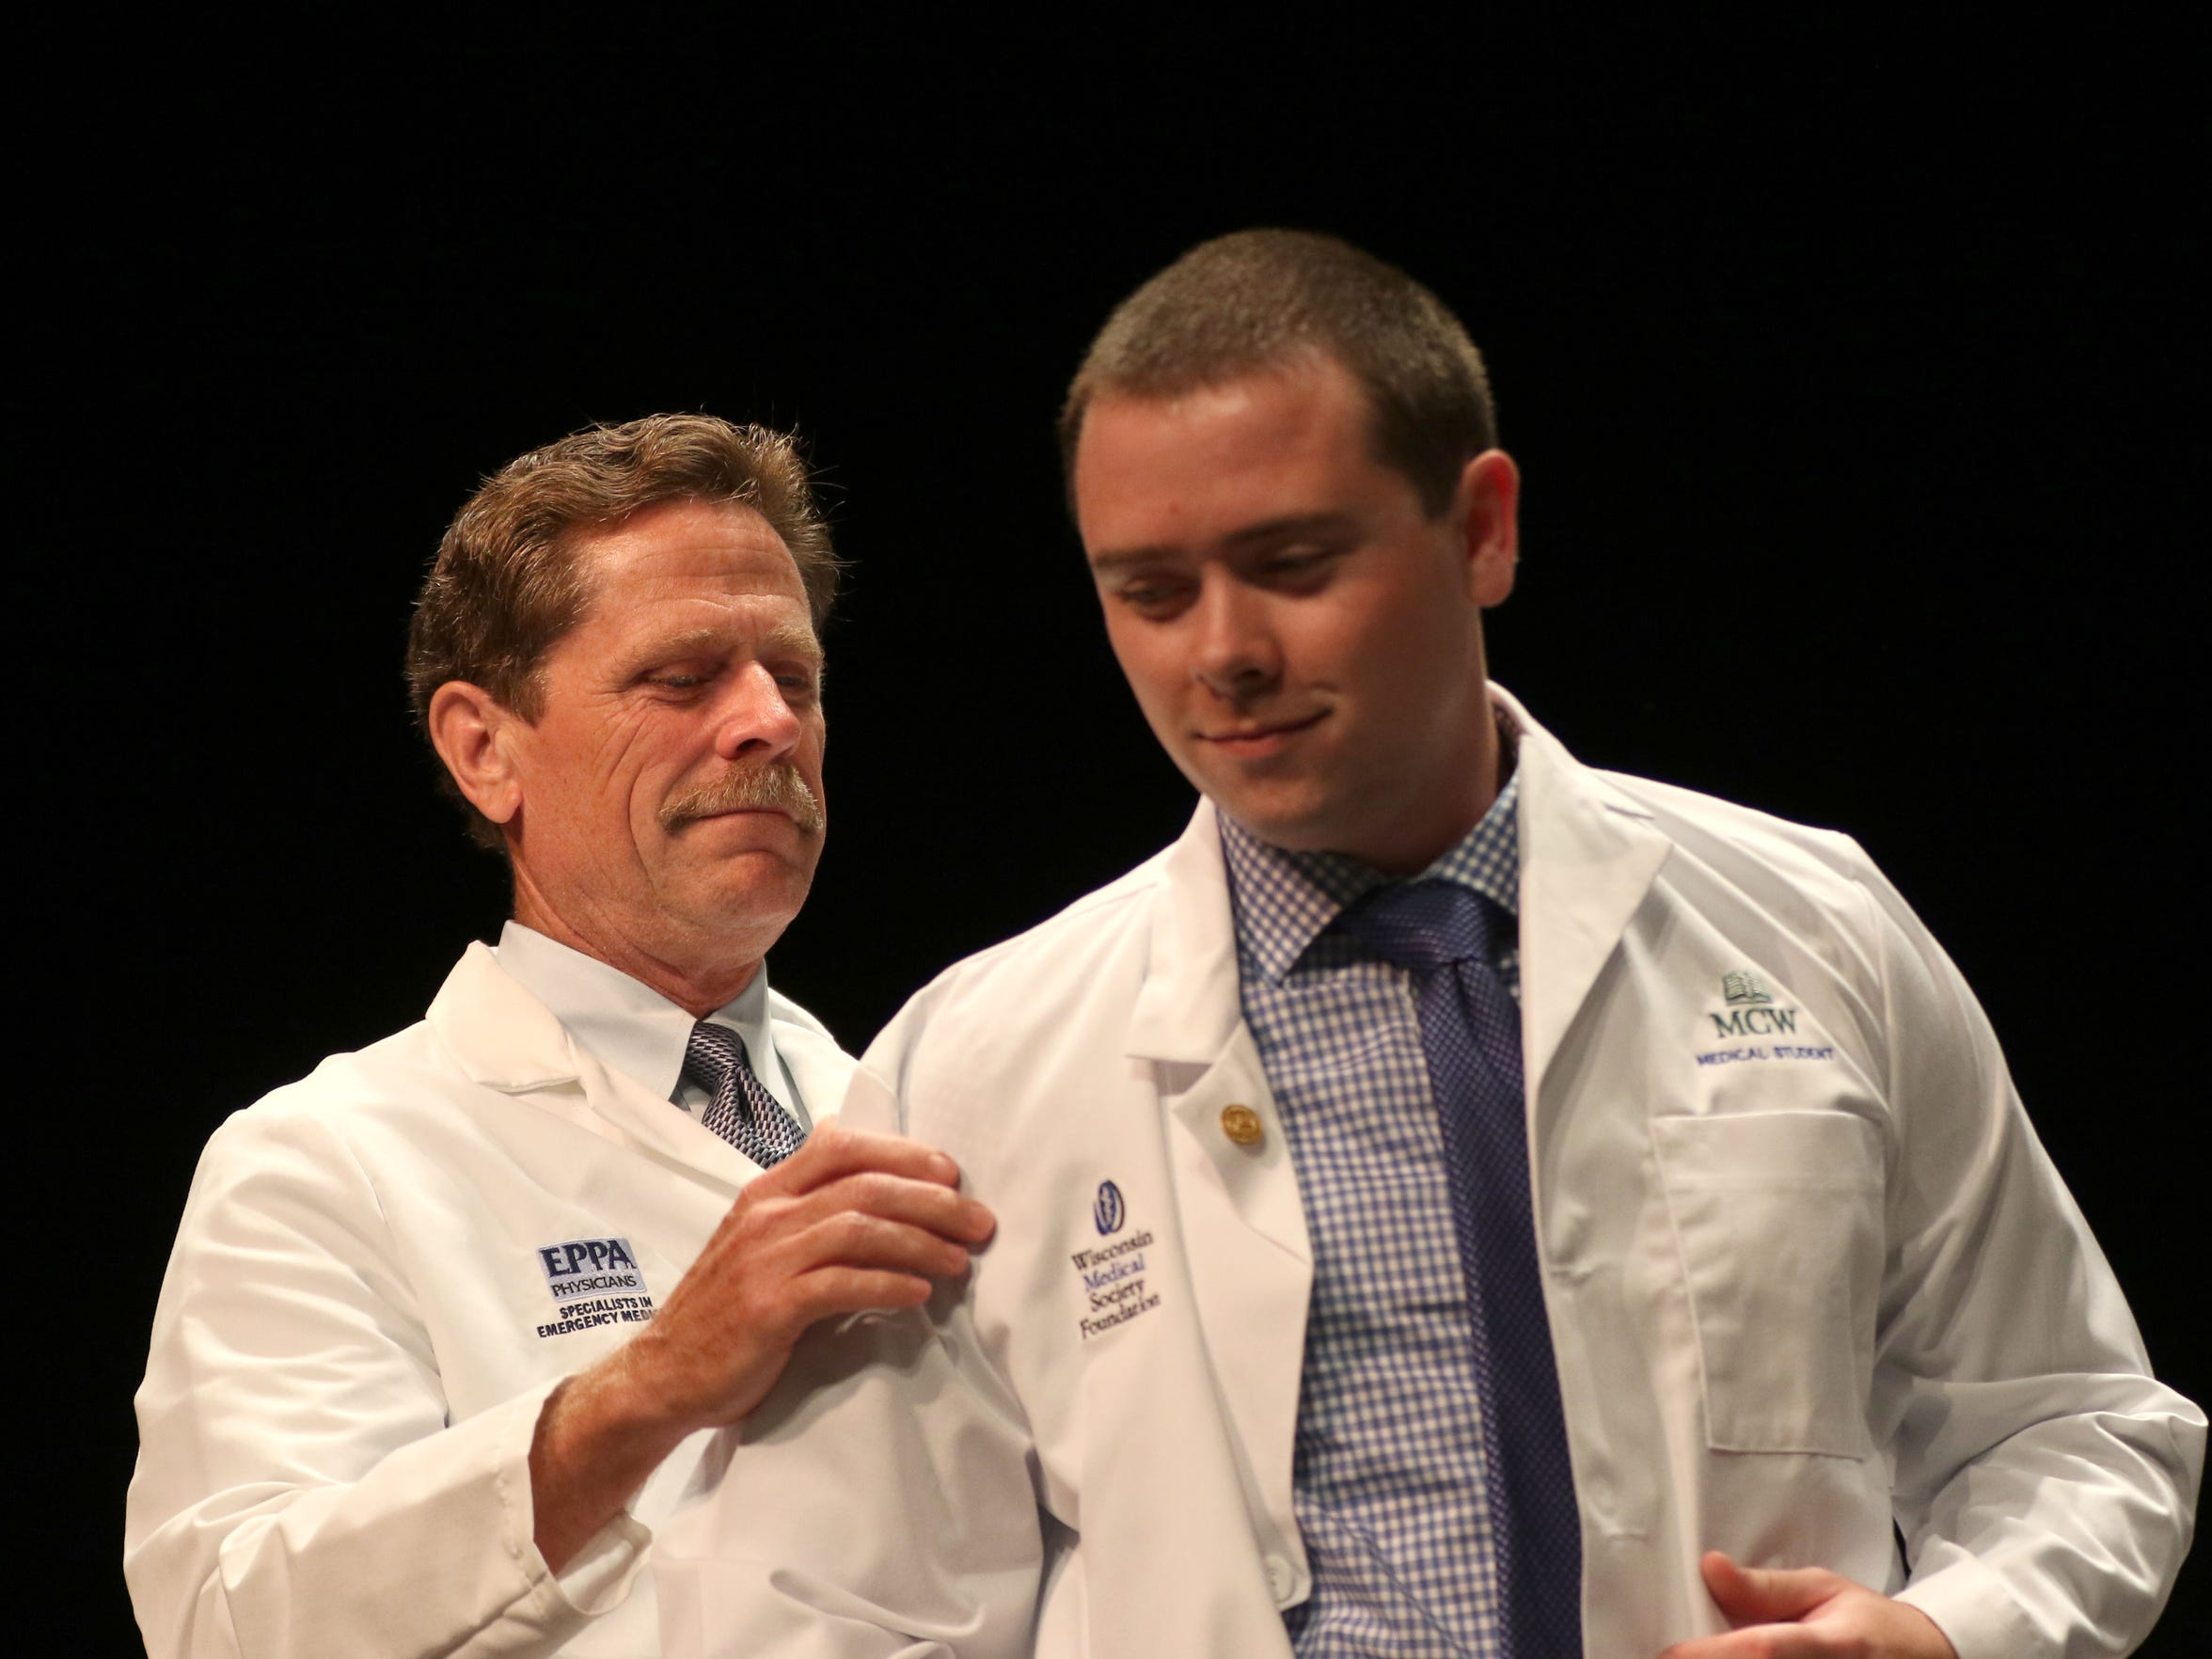 John Frawley is coated during the Medical College of Wisconsin Central Wisconsin White Coat Ceremony at UW Marathon County, in Wausau, Wisconsin, July 7, 2016.